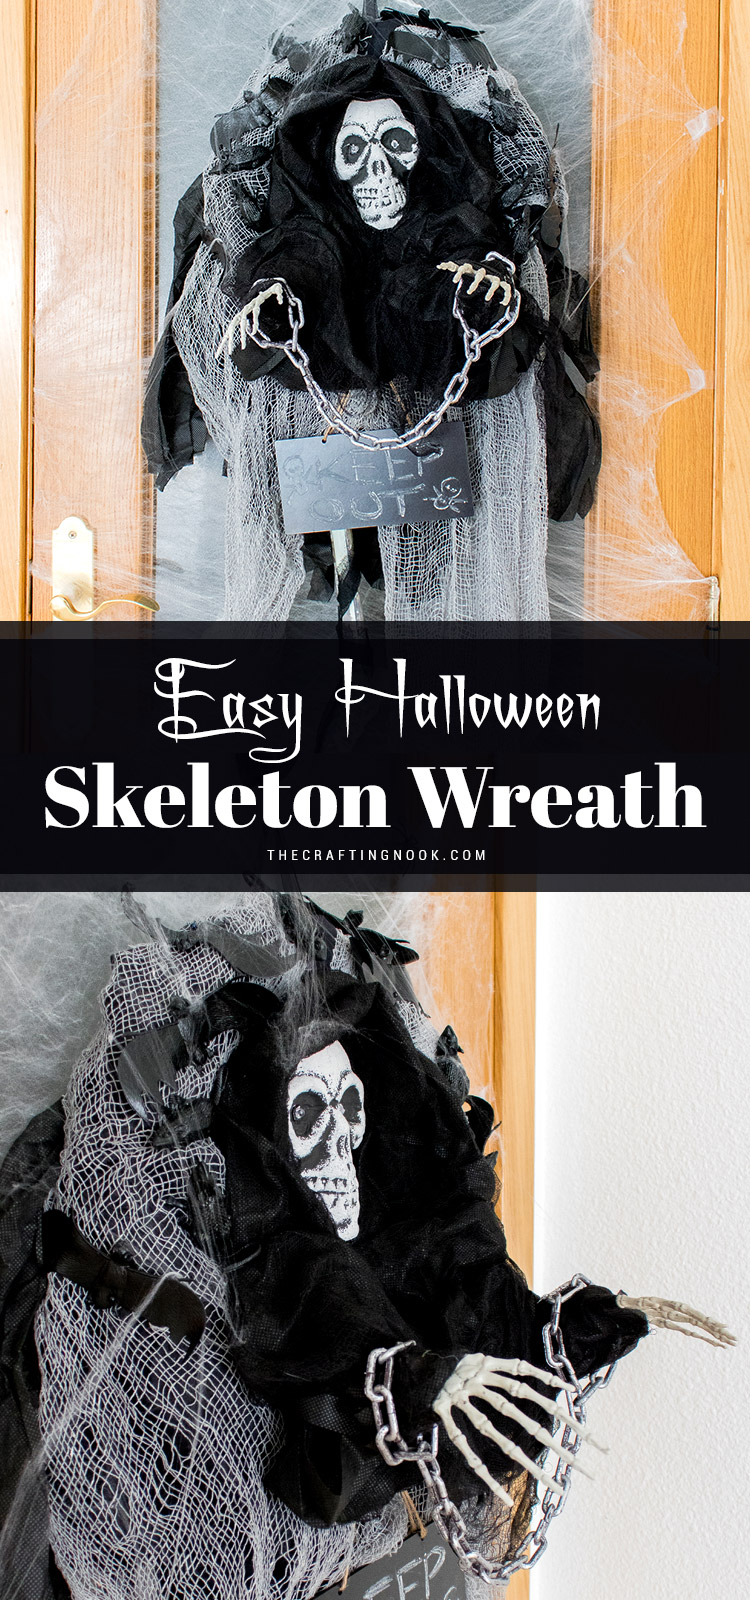 How to make an Easy Halloween Skeleton Wreath